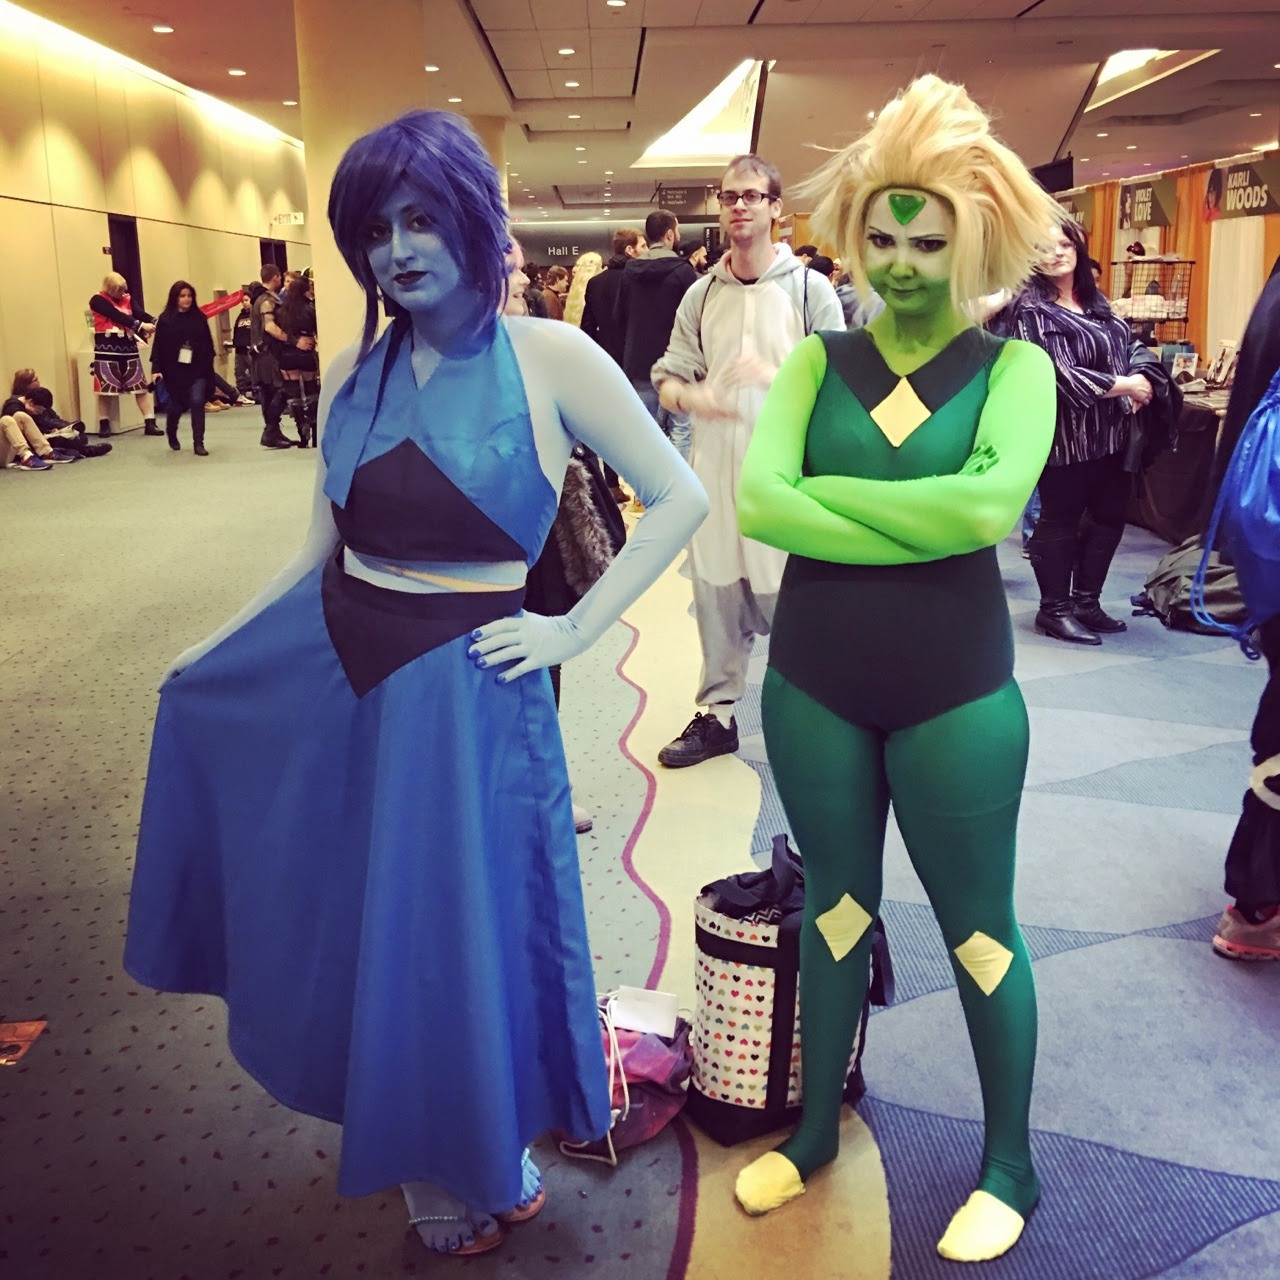 Lapis and Peridot! I really liked this Peridot's hair; she made it look natural instead of the sharp edges that most Peridot cosplayers do.